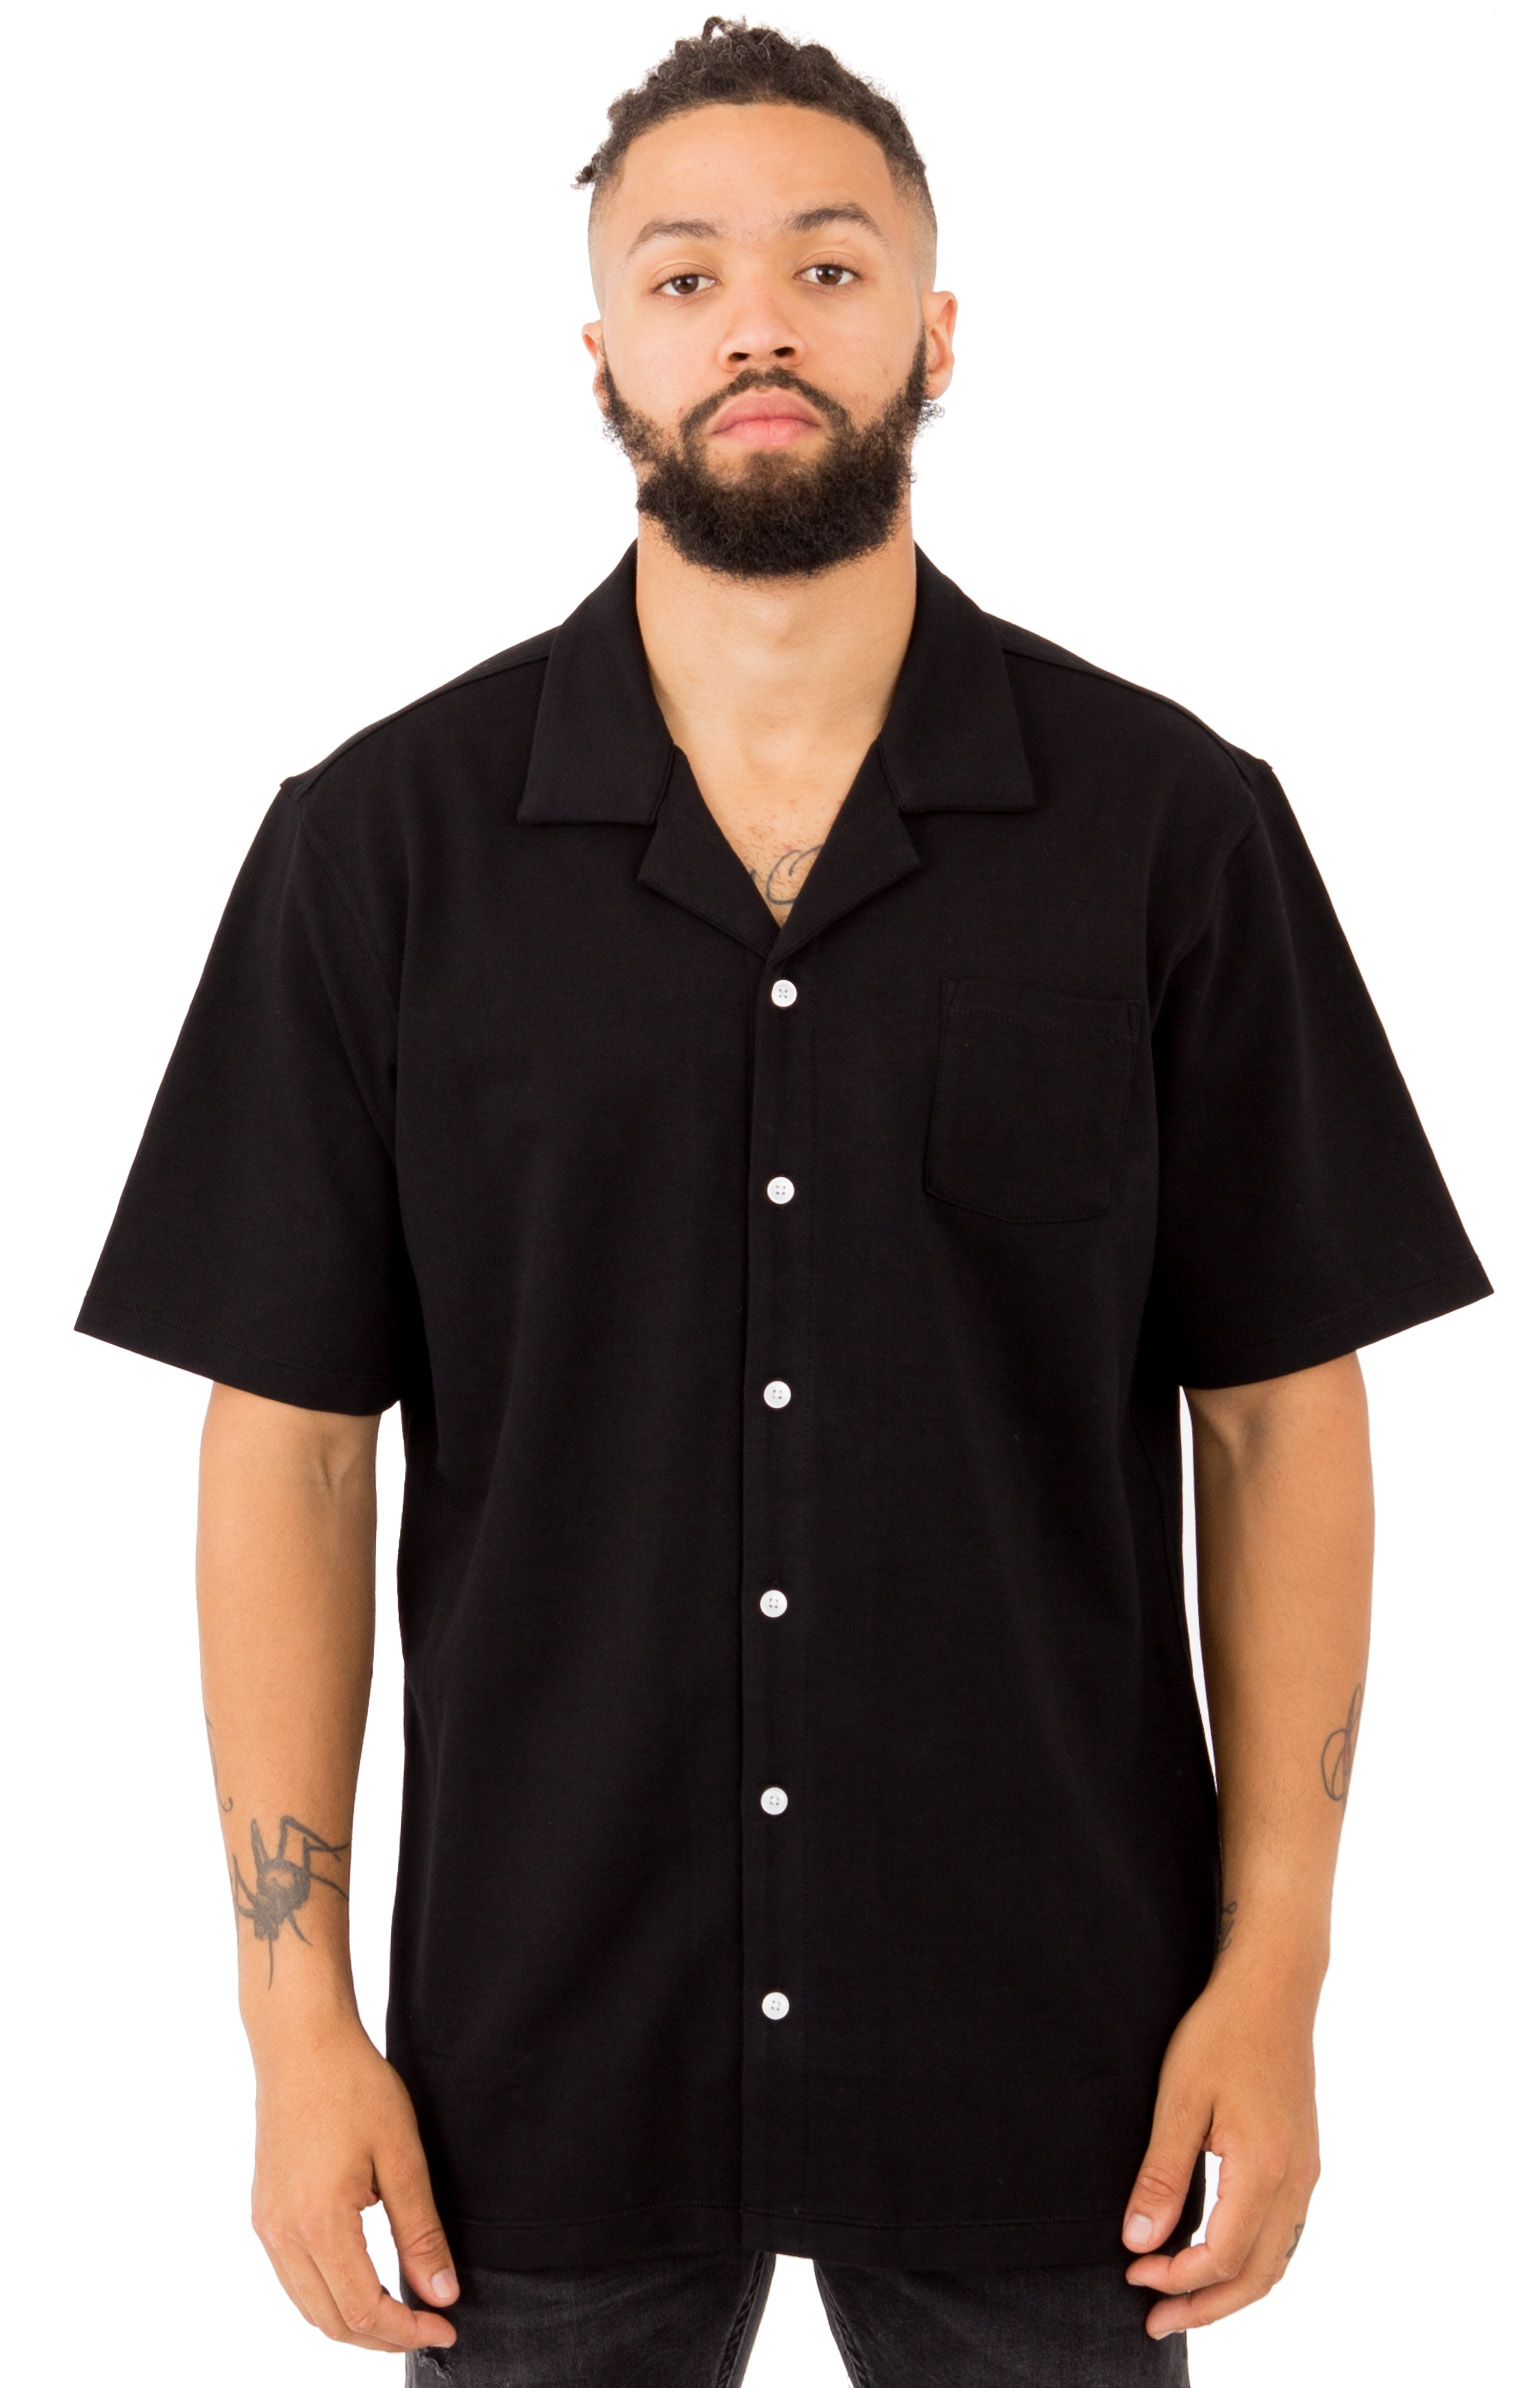 Publish, Feregrino Button-Up Shirt - Black